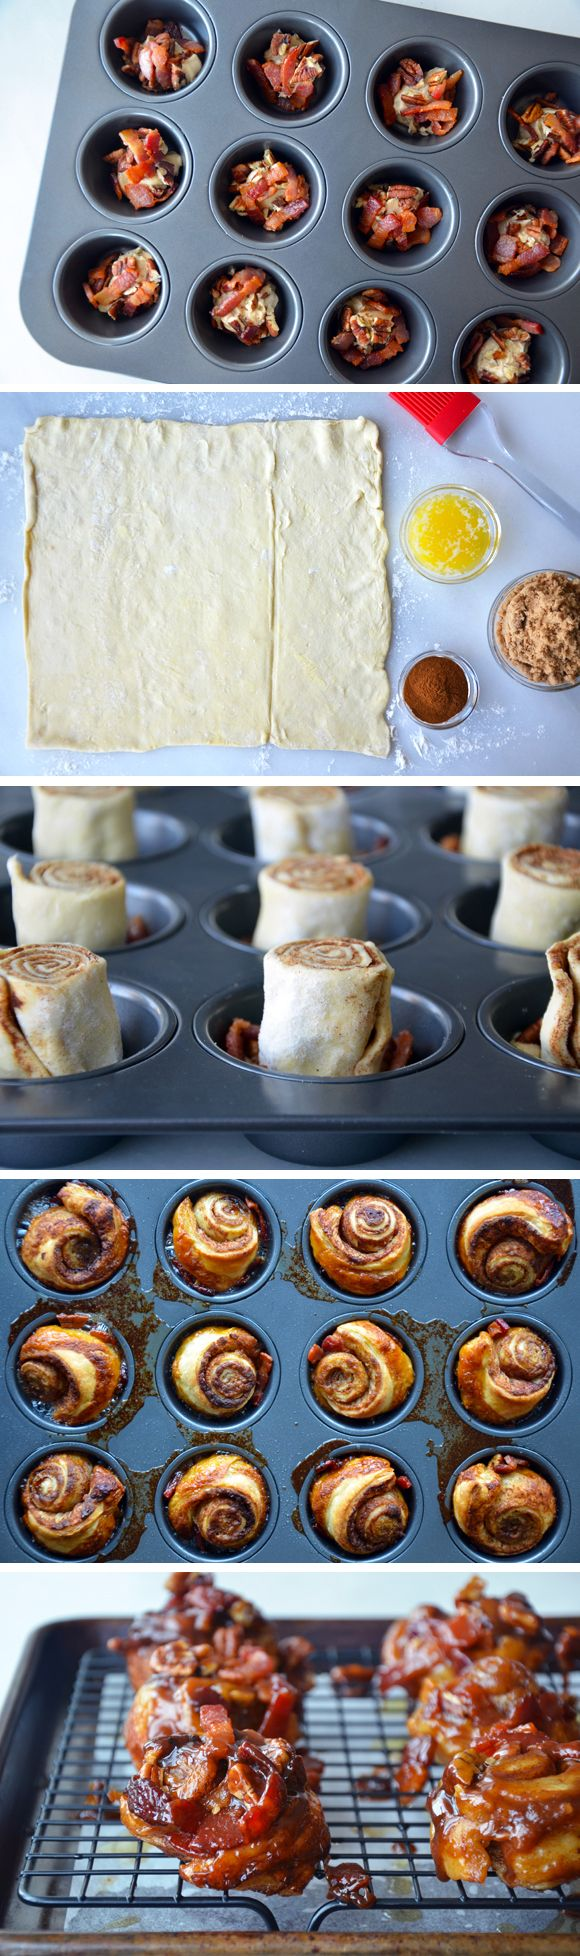 Easy Sticky Buns with Bacon.